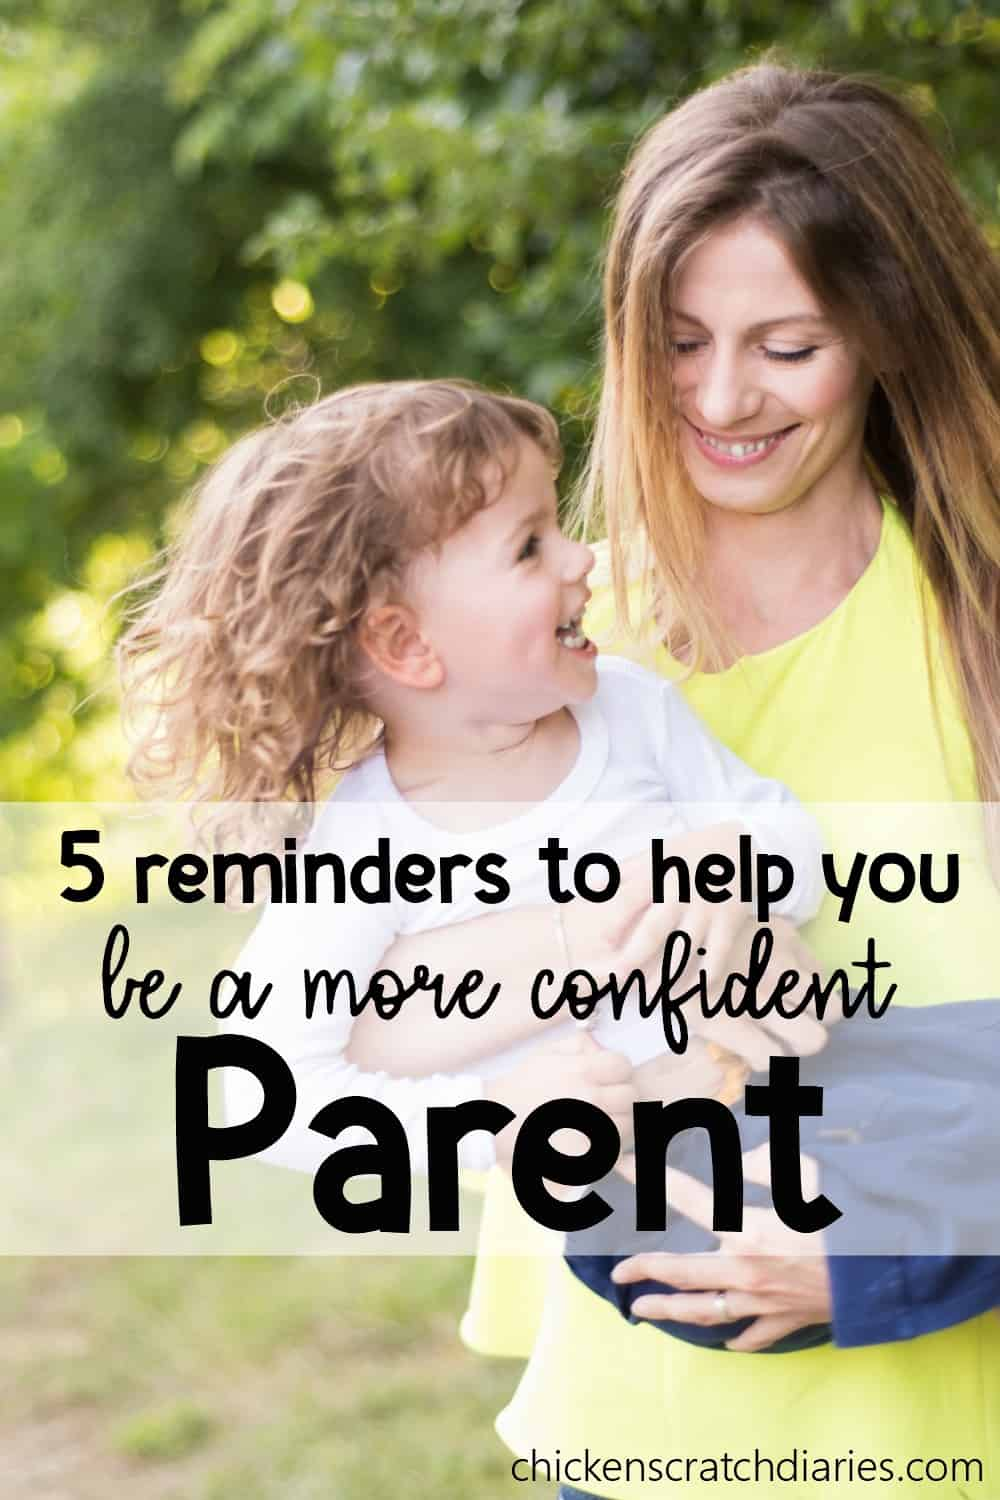 Confident parents raise confident kids. How to have confidence in yourself when everyone has an opinion about parenting.